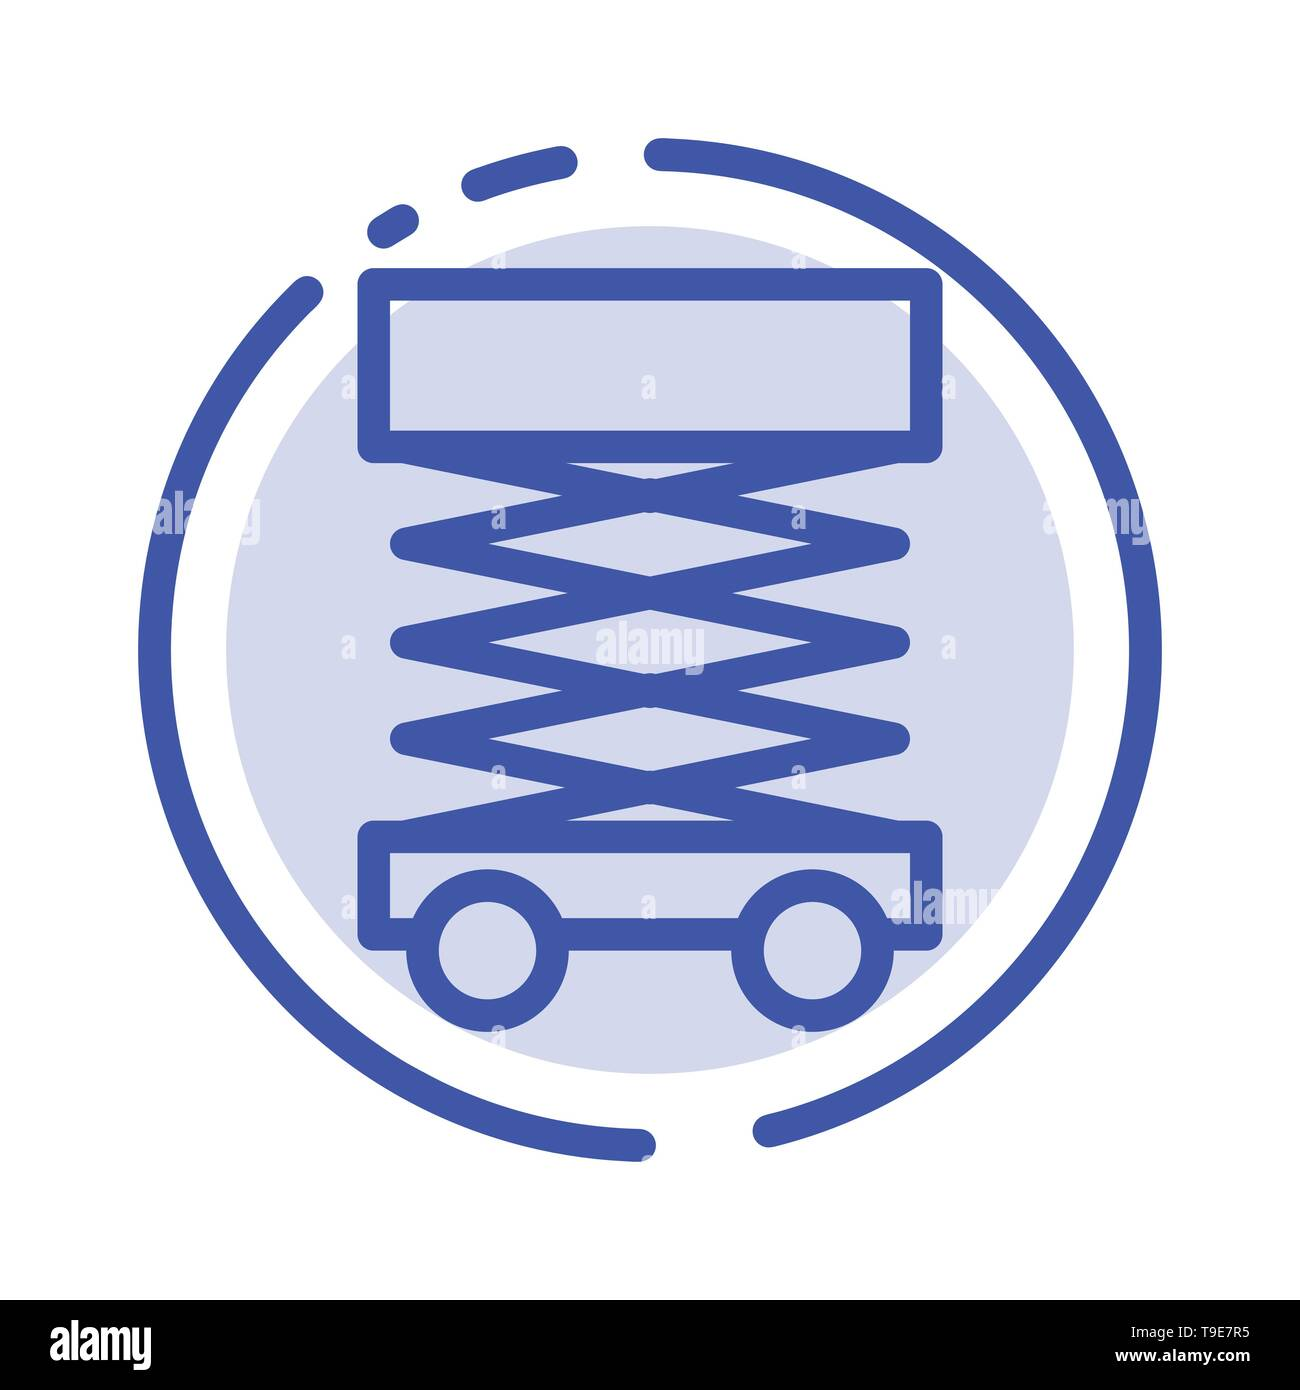 Construction, Develop, Scaffolding, Structure Blue Dotted Line Line Icon - Stock Vector